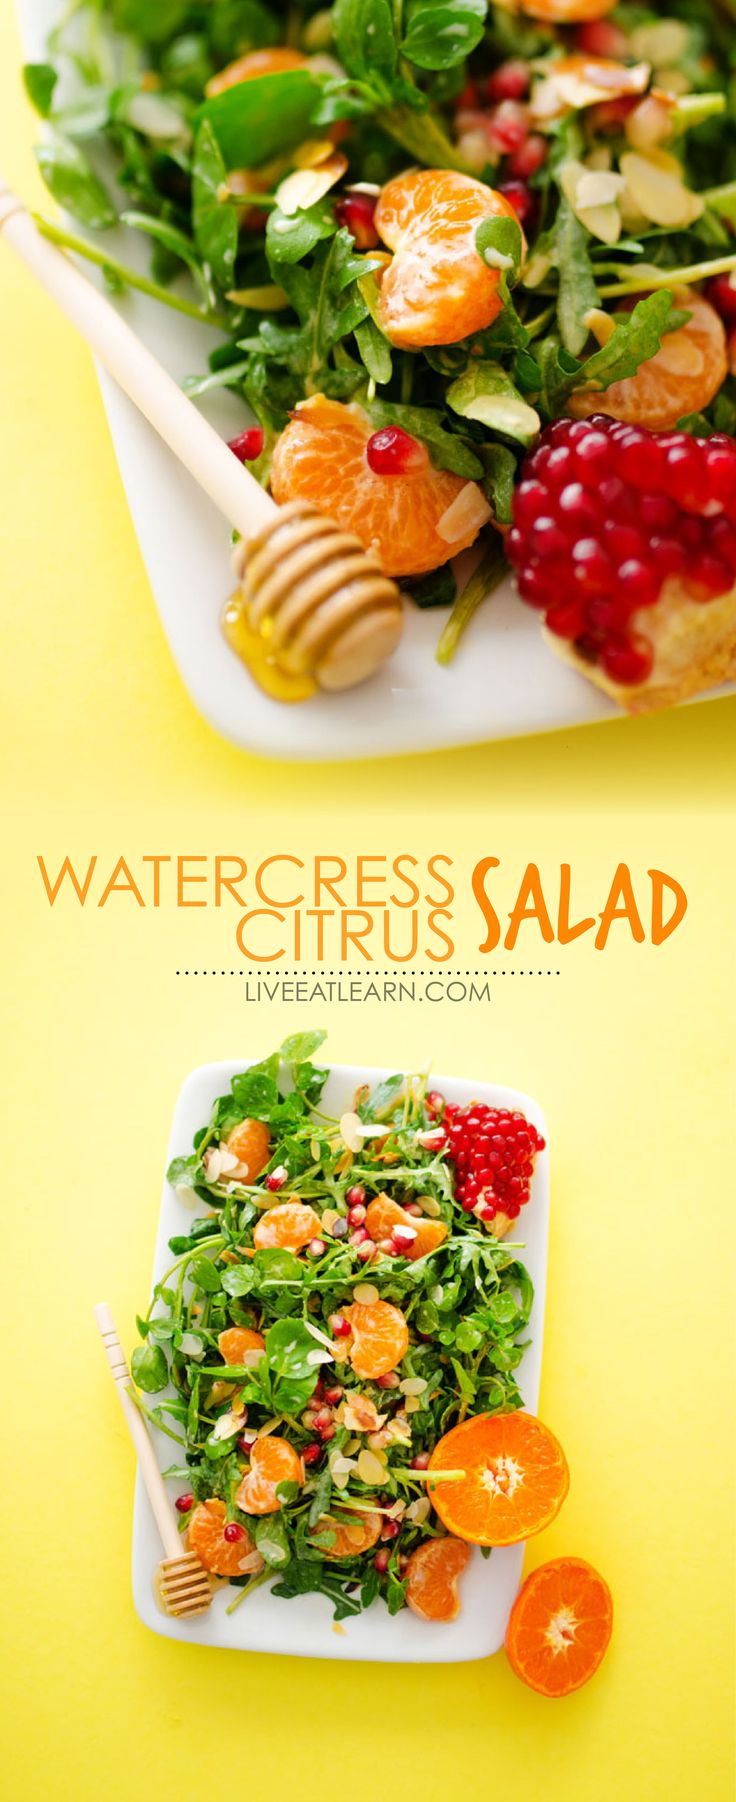 This Citrus Watercress Salad recipe is a simple, summery combination of clementines, pomegranate, and leafy greens, tossed in a cinnamon yogurt dressing. It's a healthy, vegetarian and gluten-free dinner or lunch recipe that is easy to make, quick, and so full of flavor. // Live Eat Learn Sponsored by @WatercressLife #watercress #watercresslife #wondersofwatercress